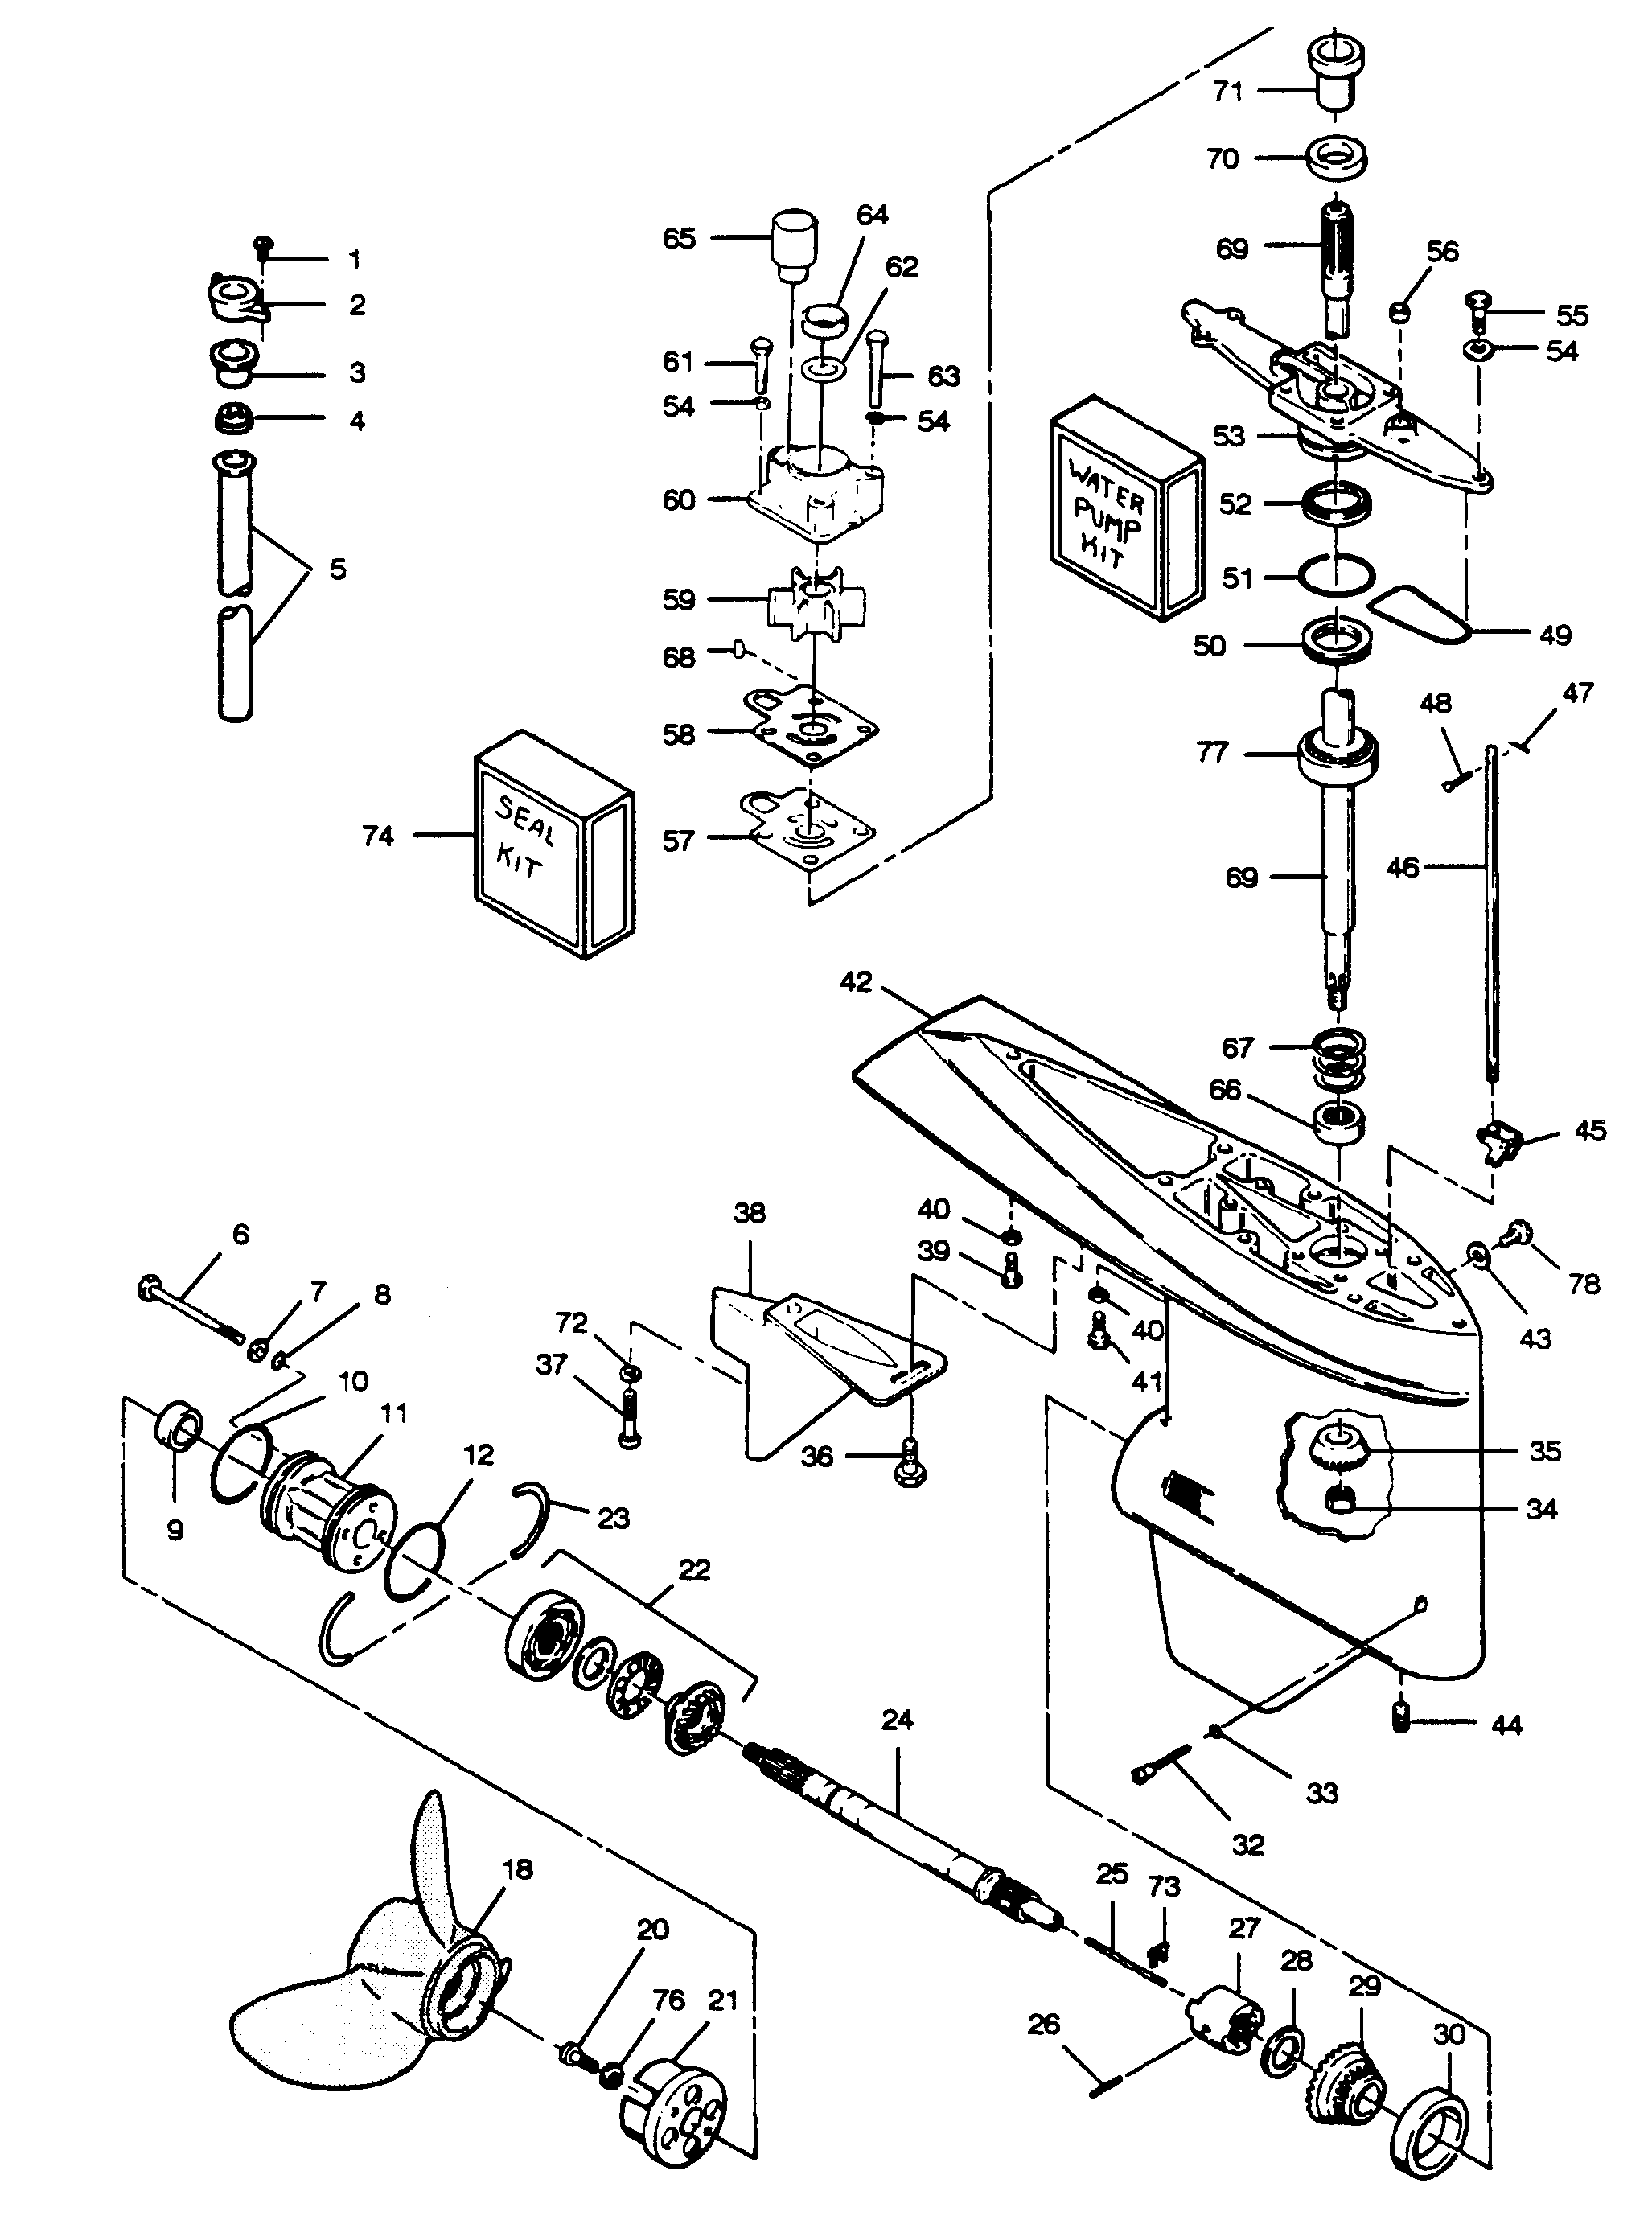 1996 Mercruiser Starter Wiring Diagram Schematics Diagrams Volvo Penta Boat For 3 0 Engine Key Switch 57